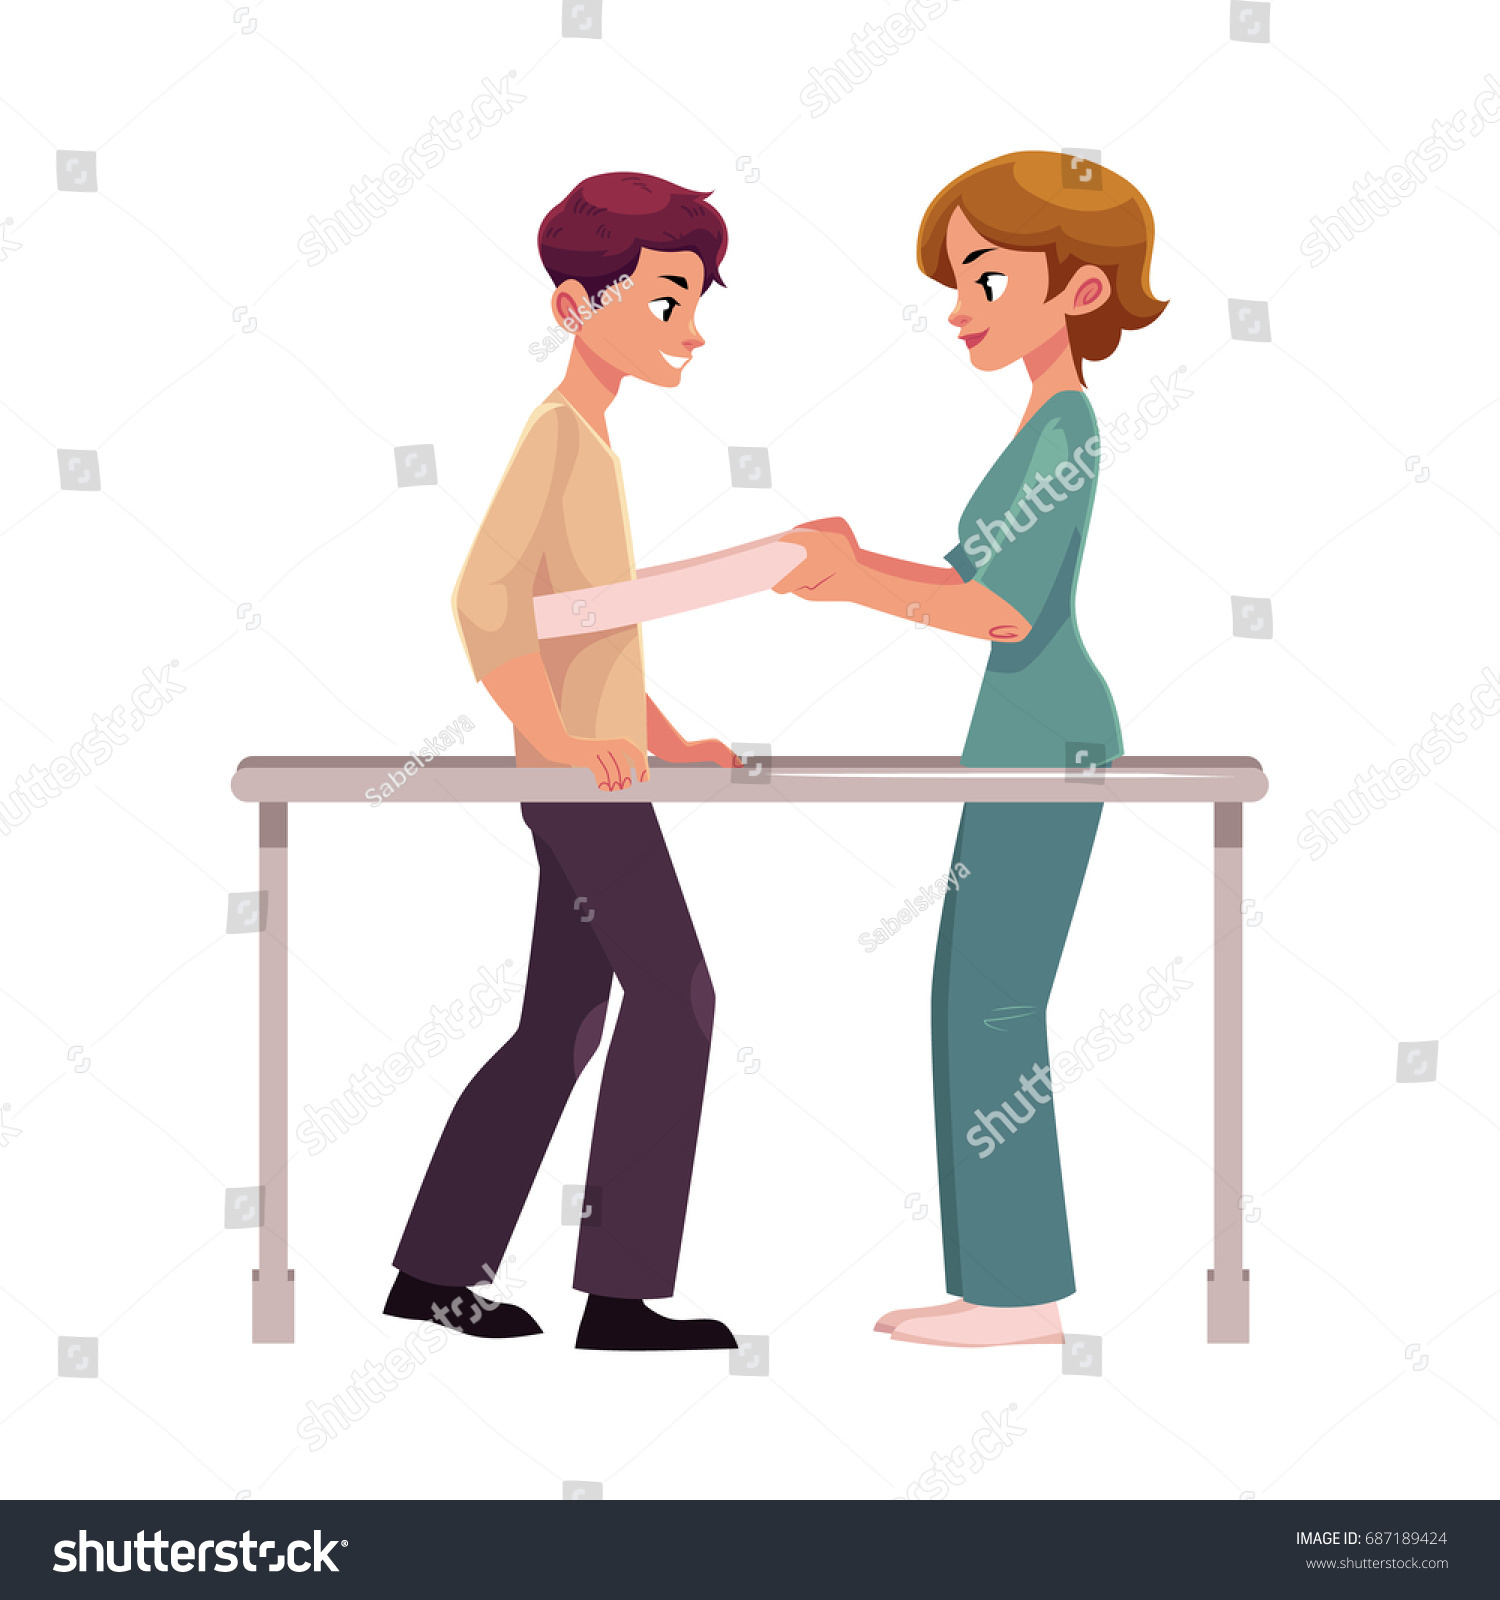 Cartoon physical therapy - Medical Rehabilitation Physical Therapy Parallel Bars Therapist Working With Patient Cartoon Vector